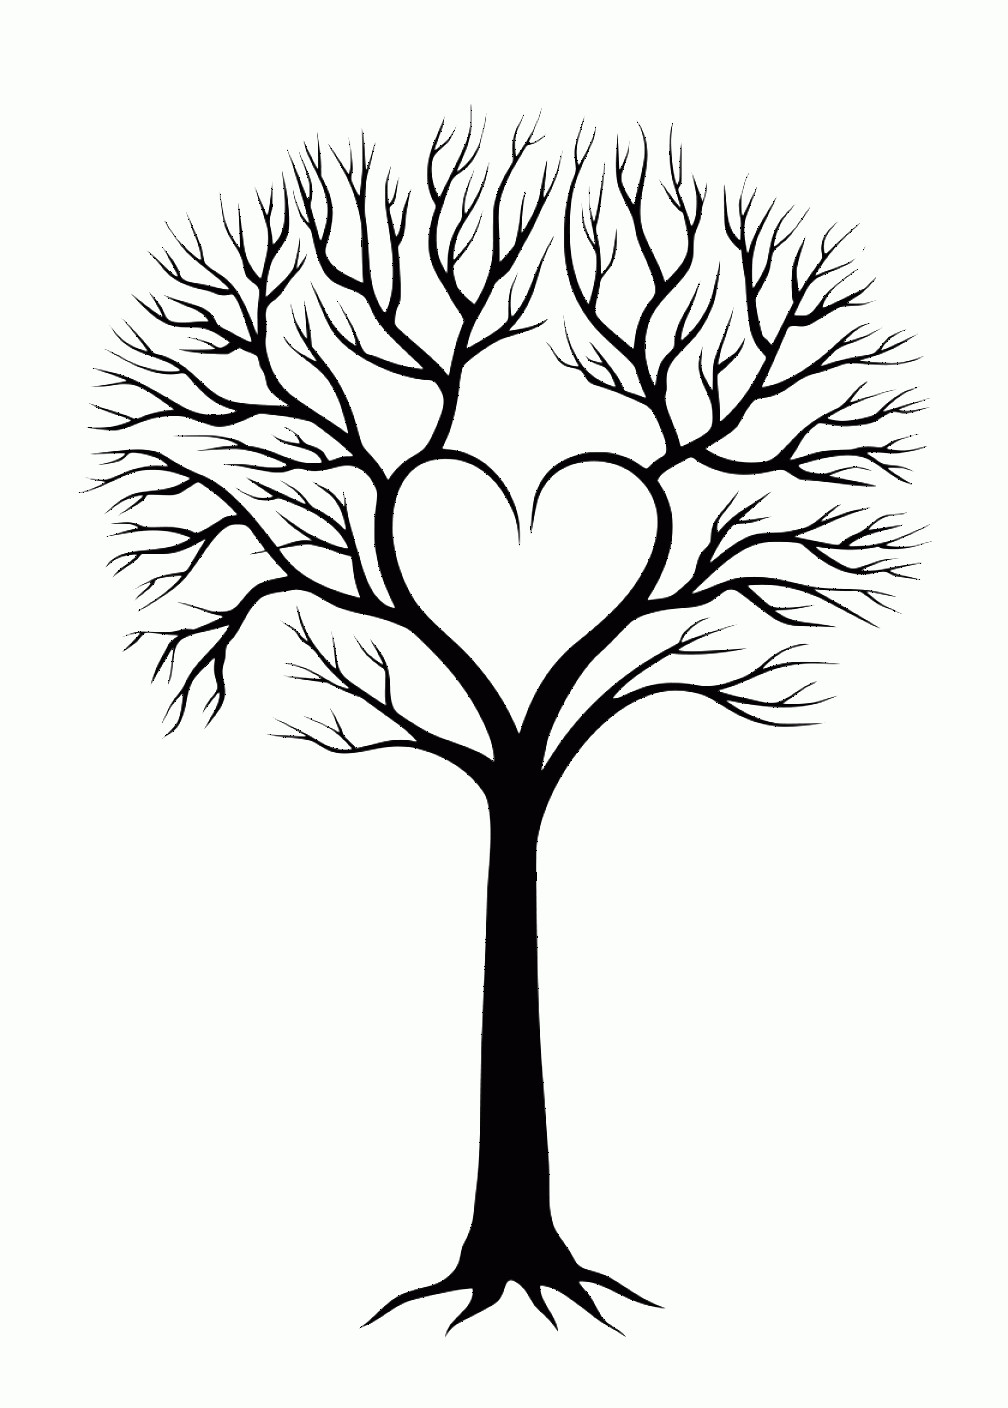 Vector Tree With Roots Drawing: Oak Tree And Roots Vector Illustration Inside Tree With Roots Tree With Roots Clipart